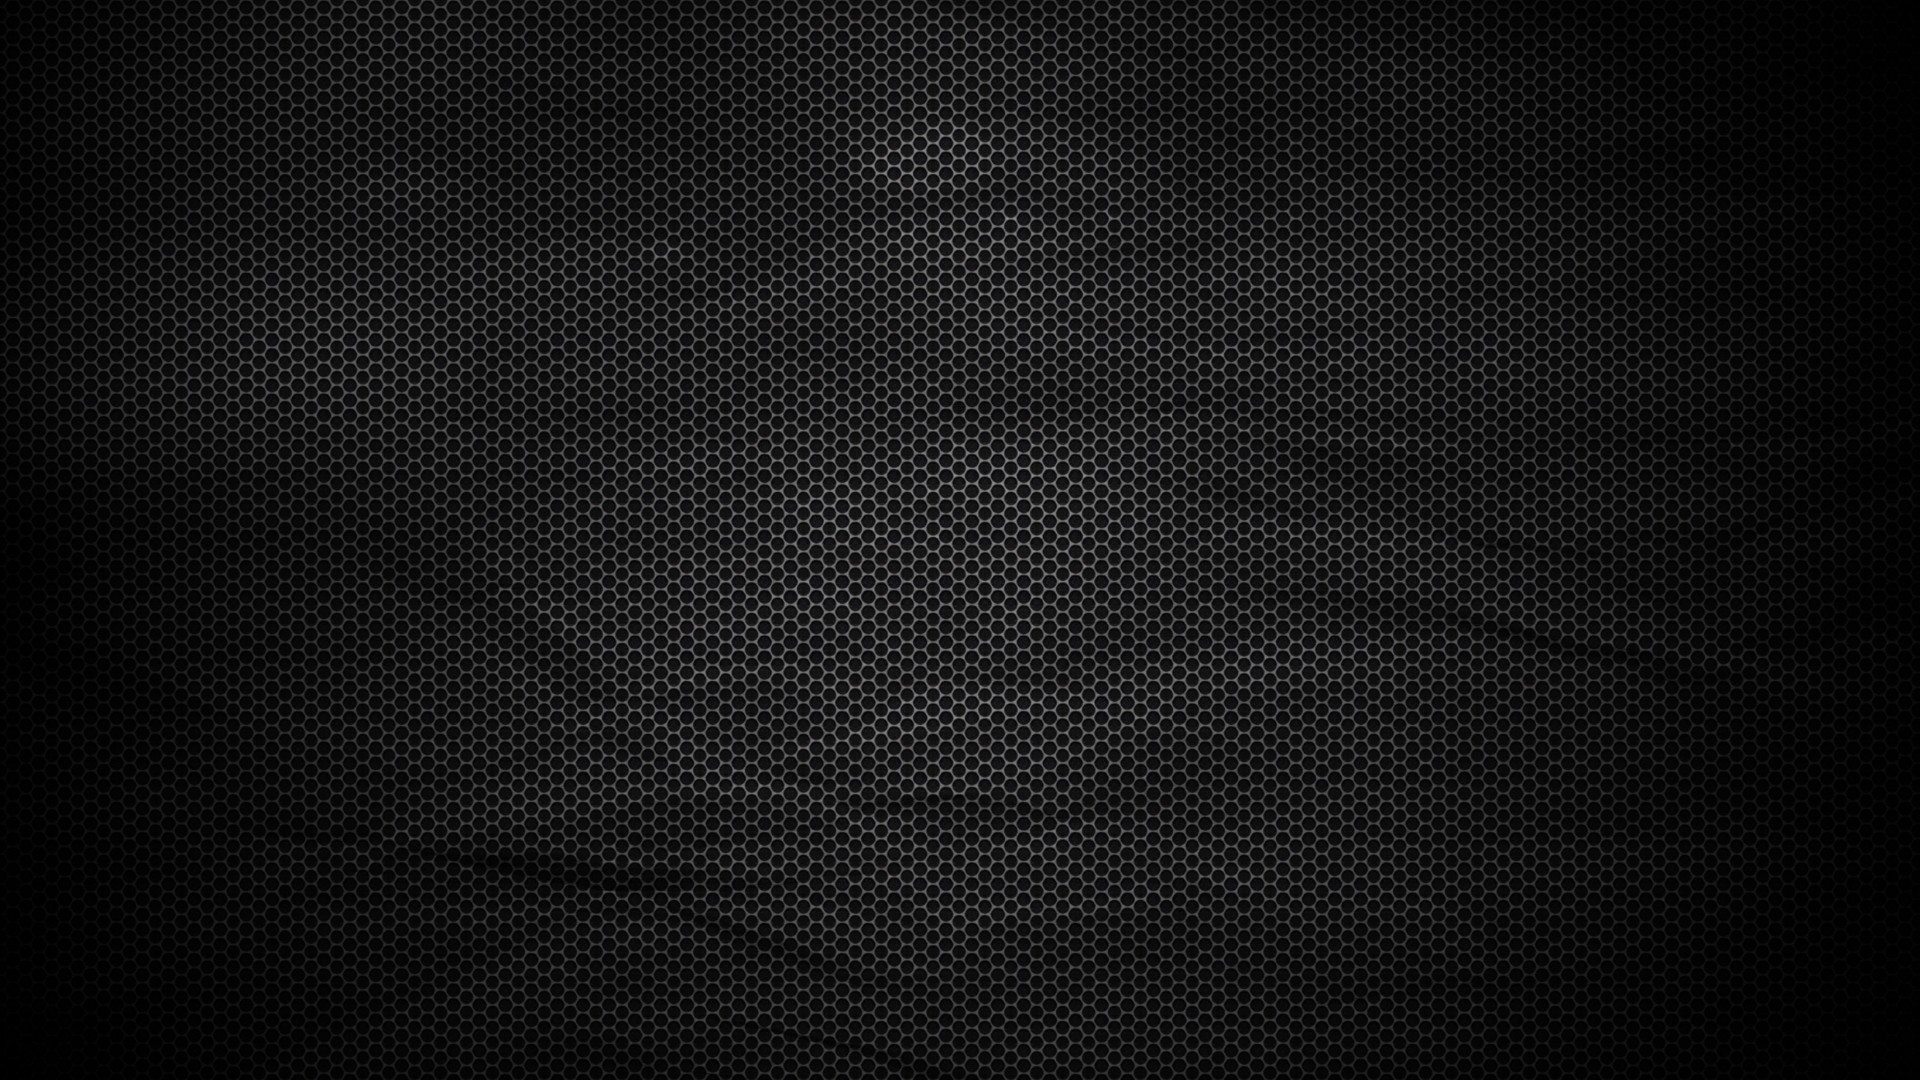 1080p background images - Background Lines Circles Size Dark Full Hd 1080p Hd